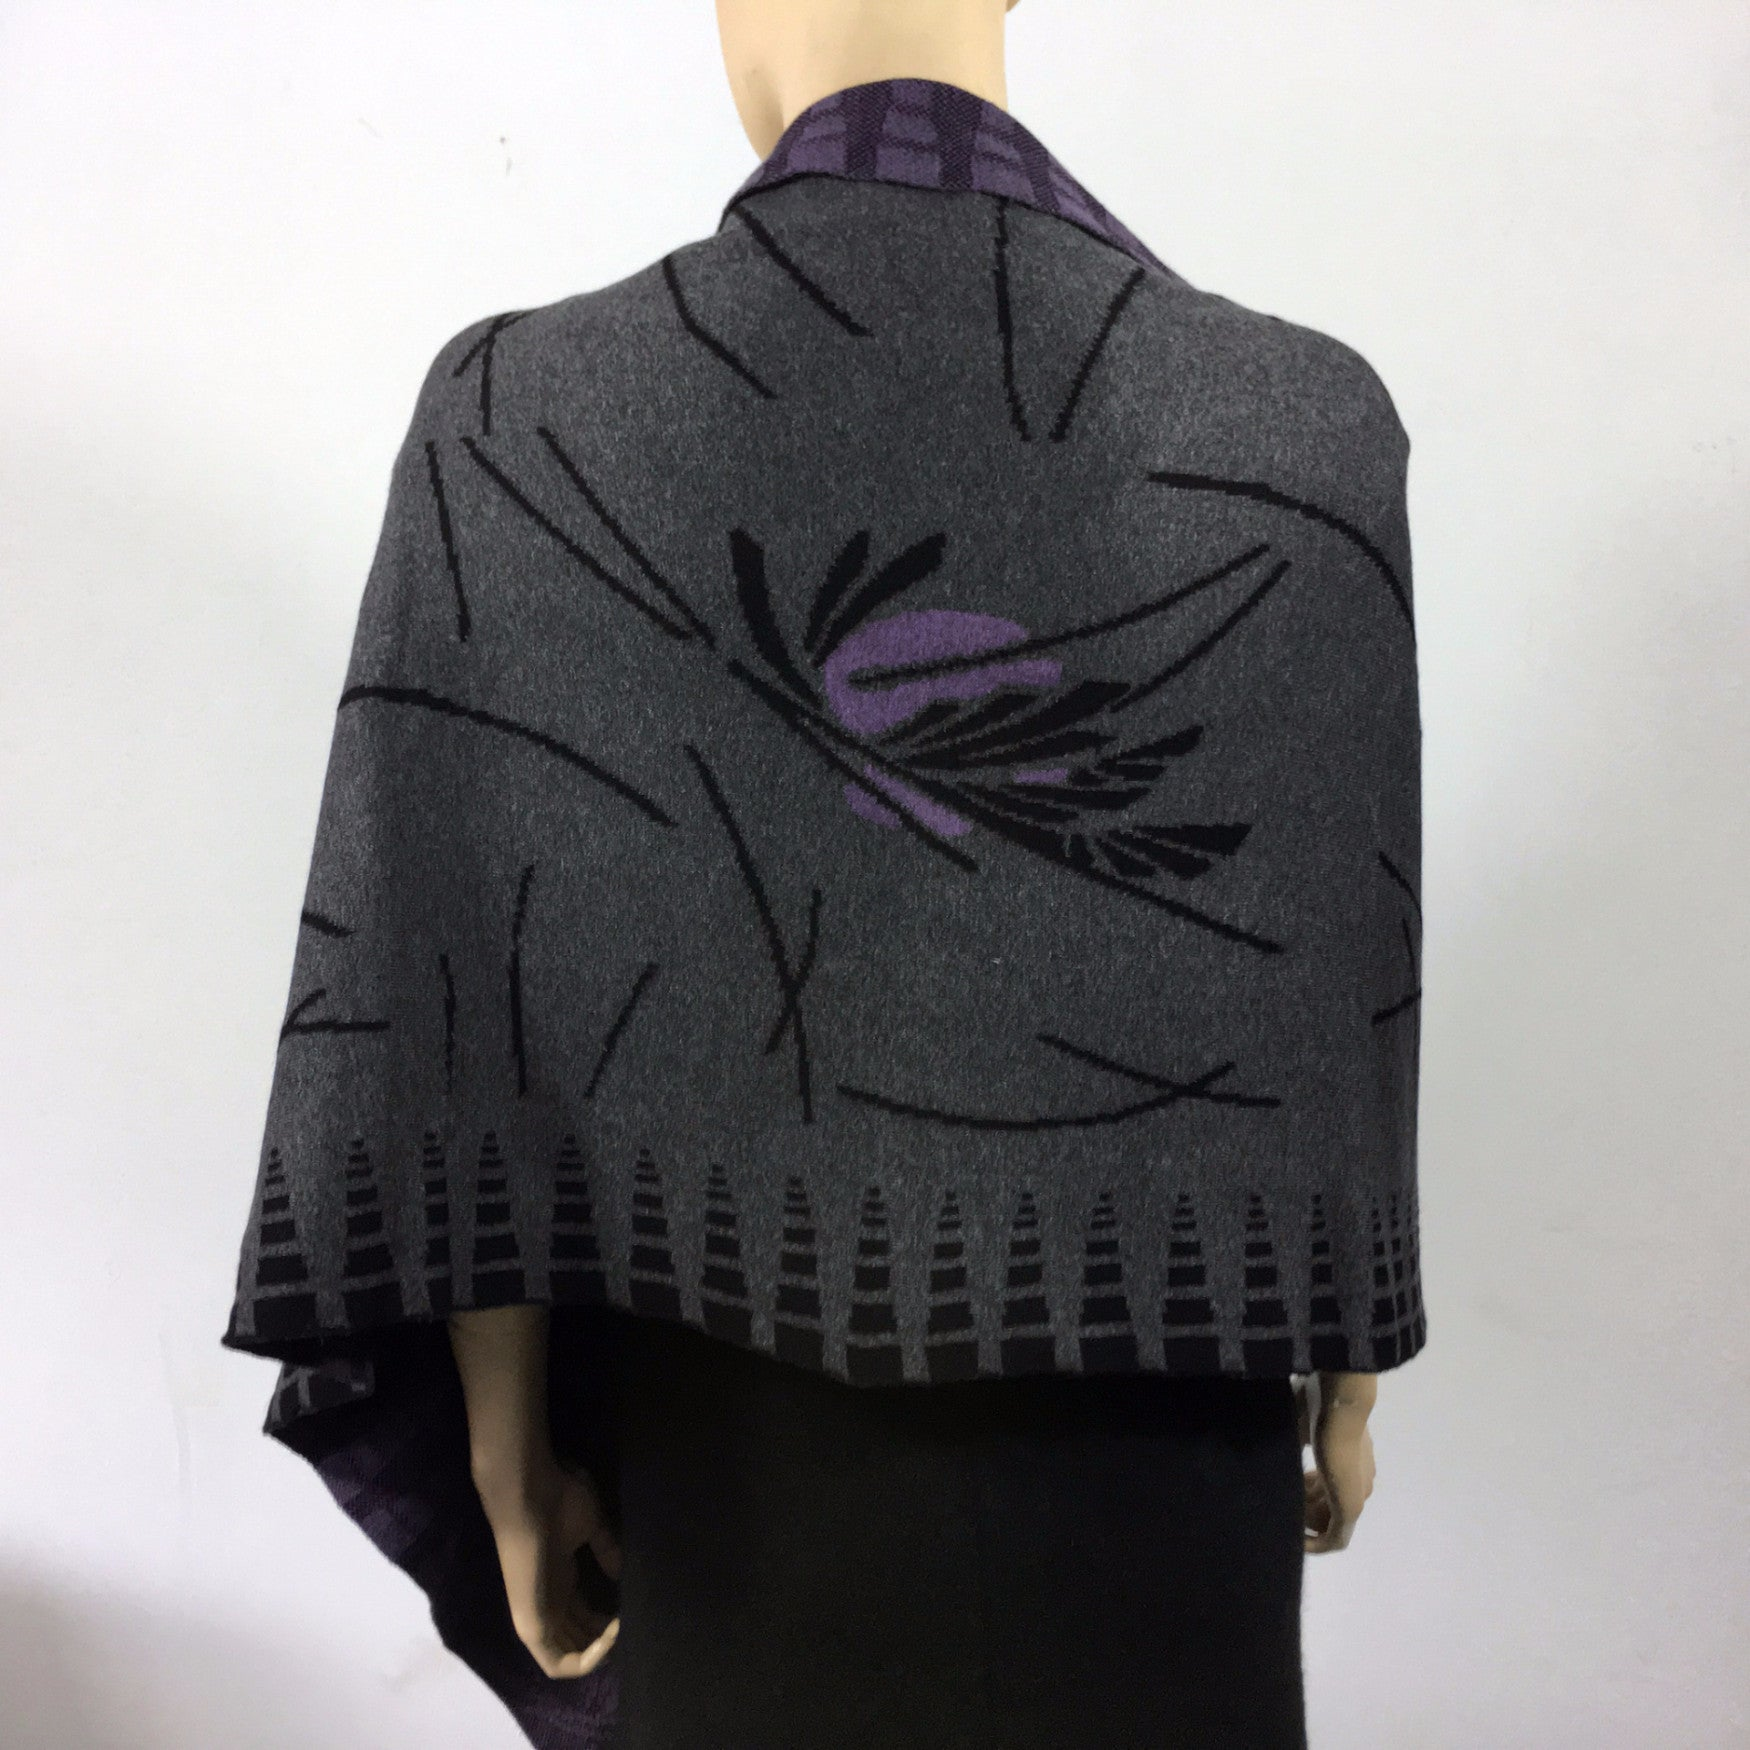 Blossom Grey Black Purple Shawl Scarf Wrap